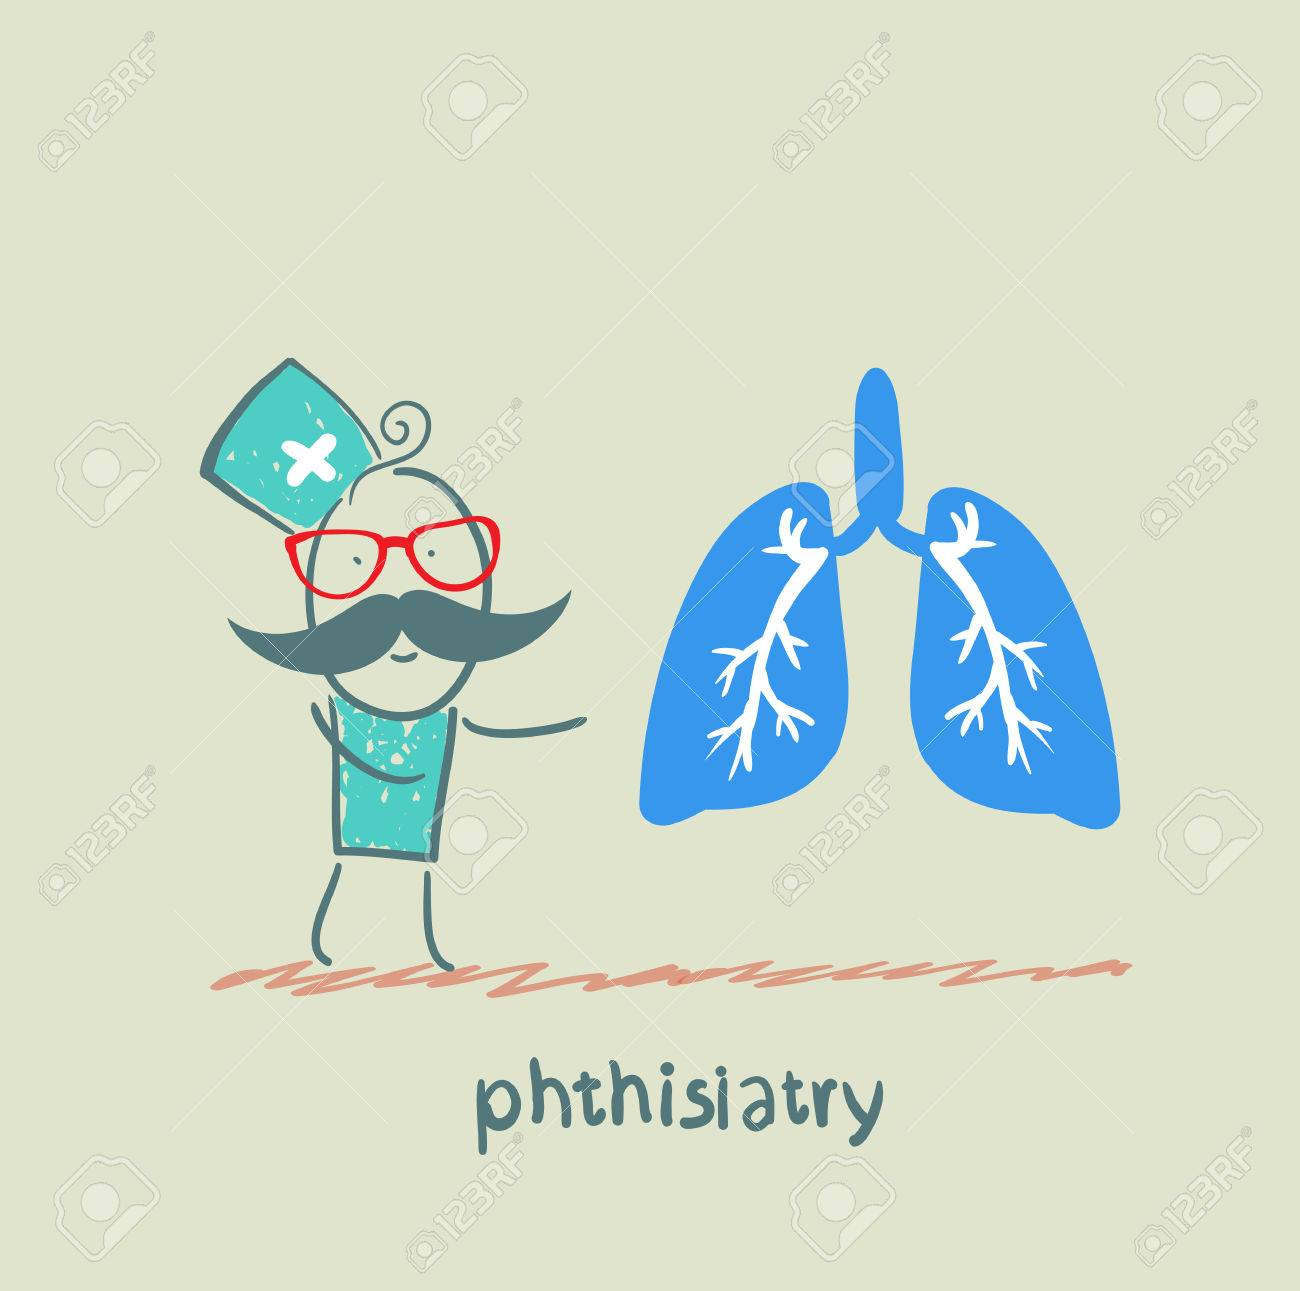 phthisiatry says the human lung Stock Vector - 23761632